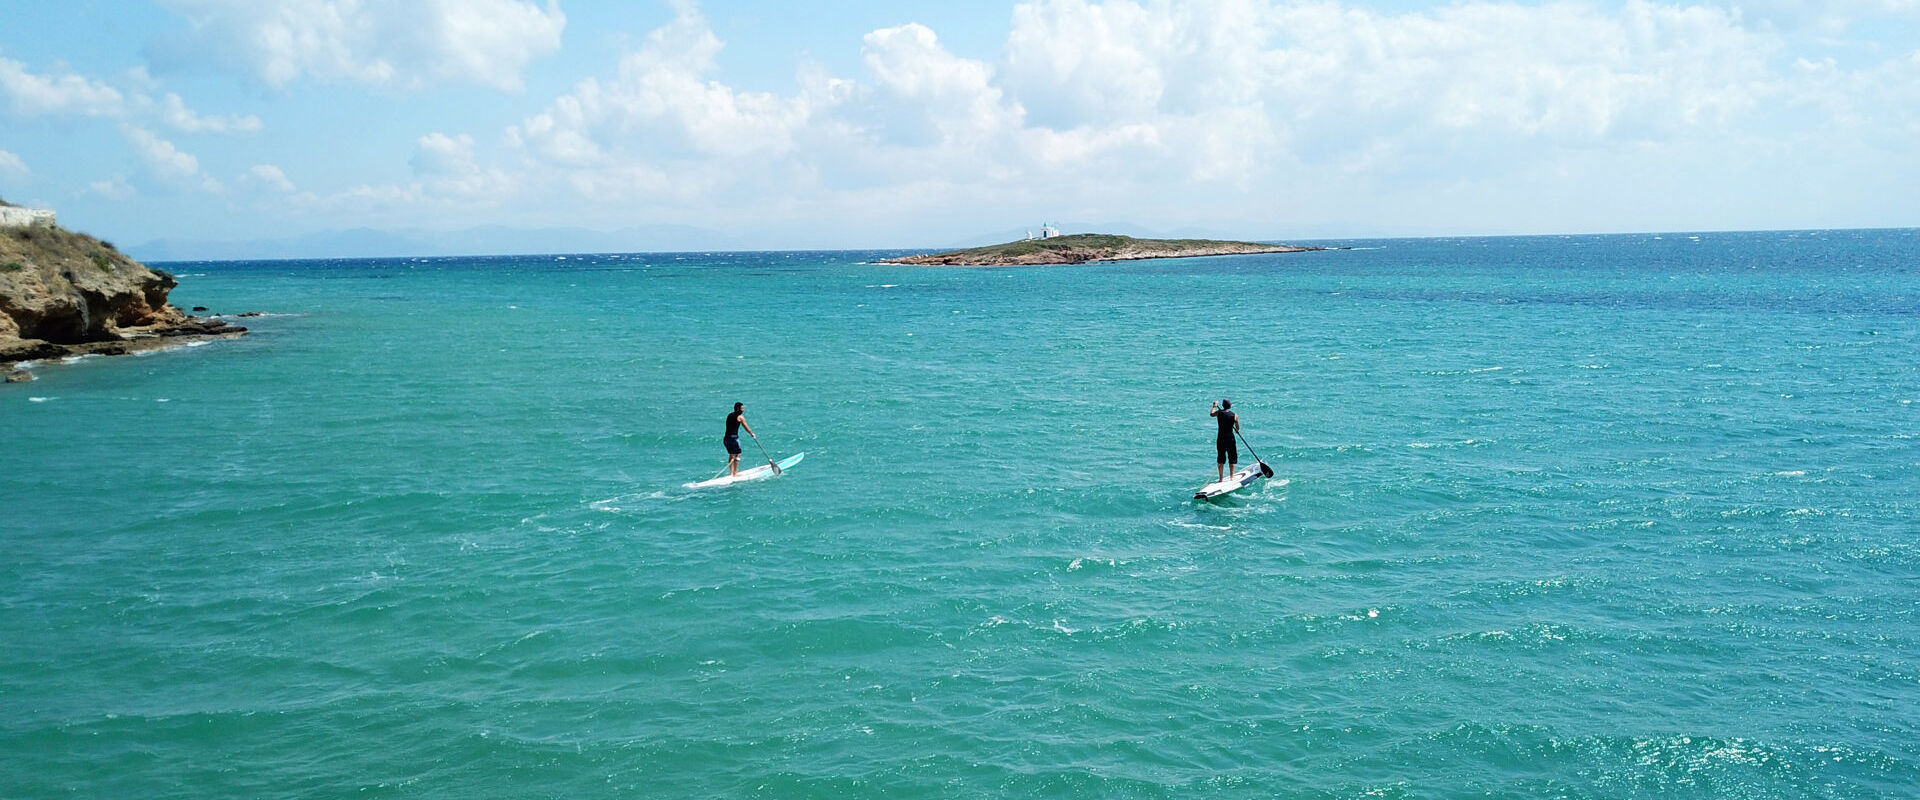 Aerial photo of competition sport paddle surfing or sup between 2 men in tropical waters of Vouliagmeni beach, Athens riviera, Attica, Greece